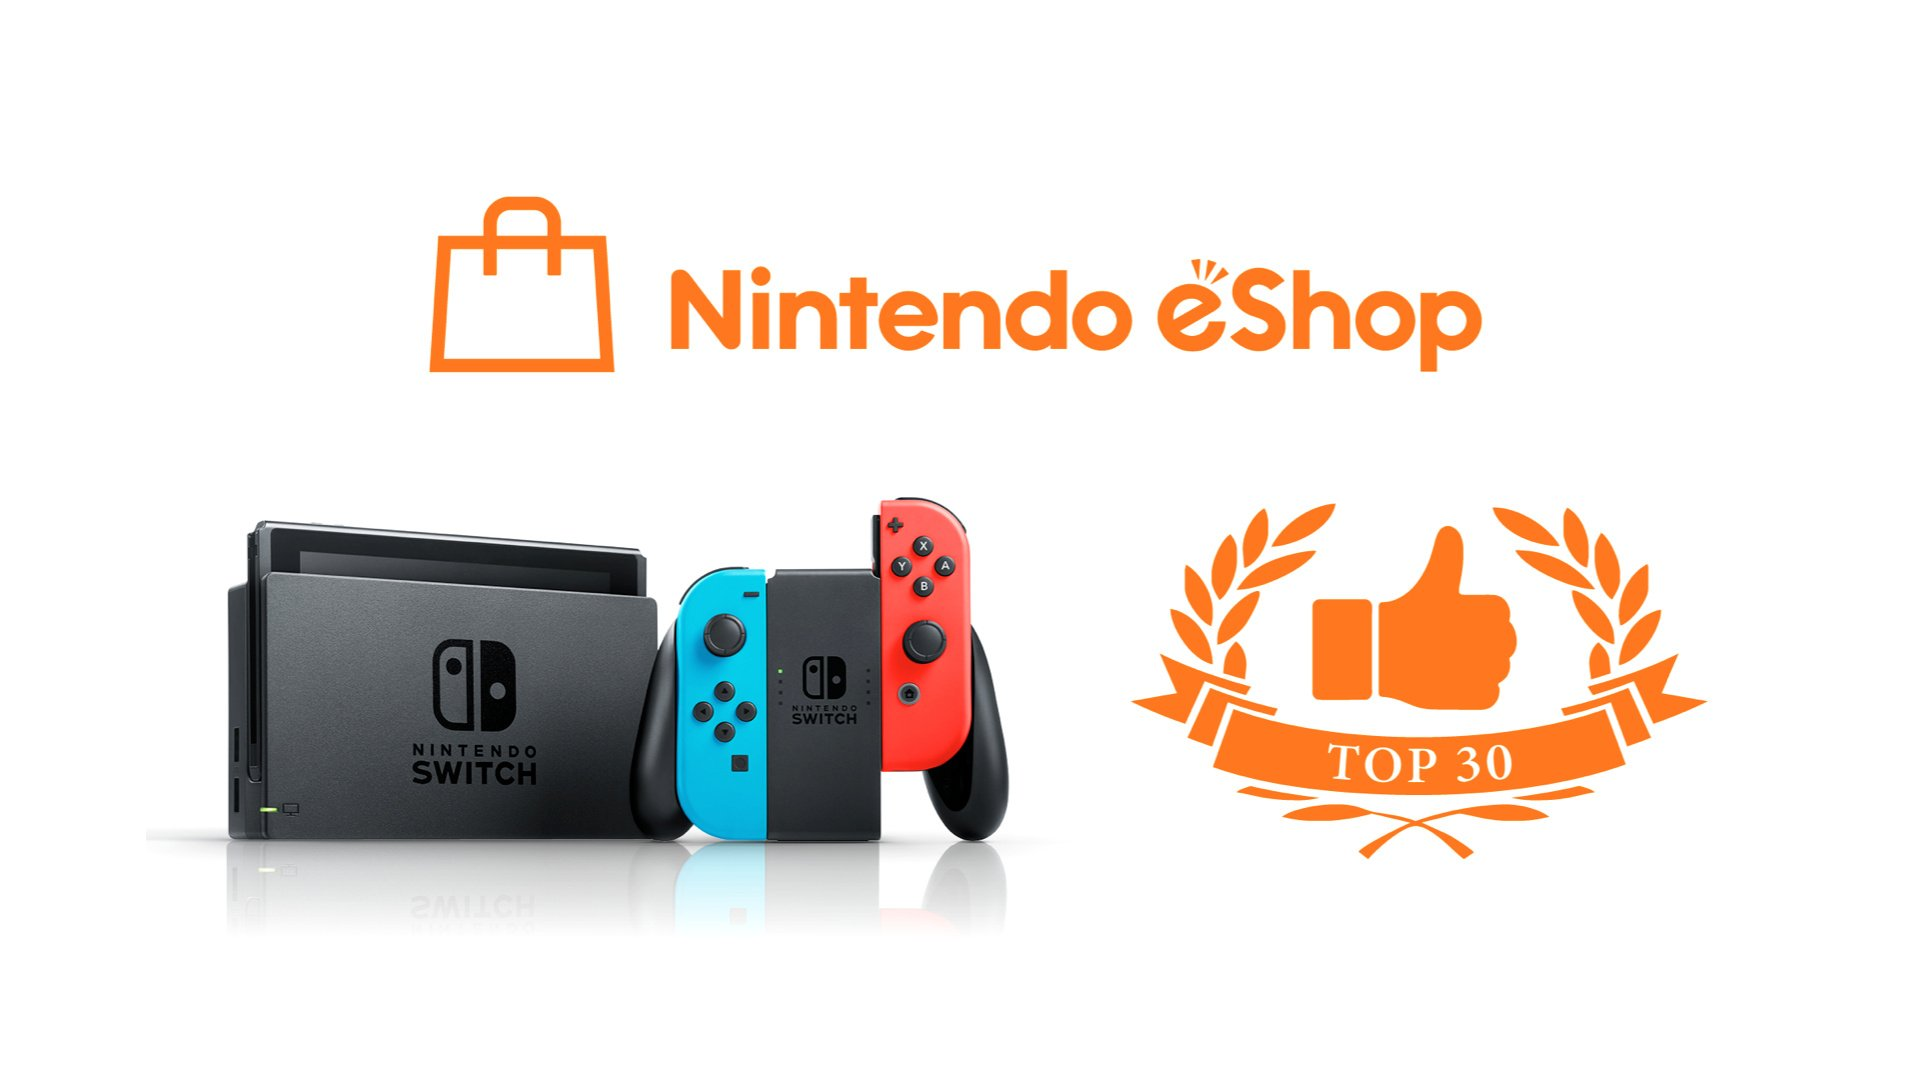 Here Are The Top 30 Best-Selling eShop Games Of February